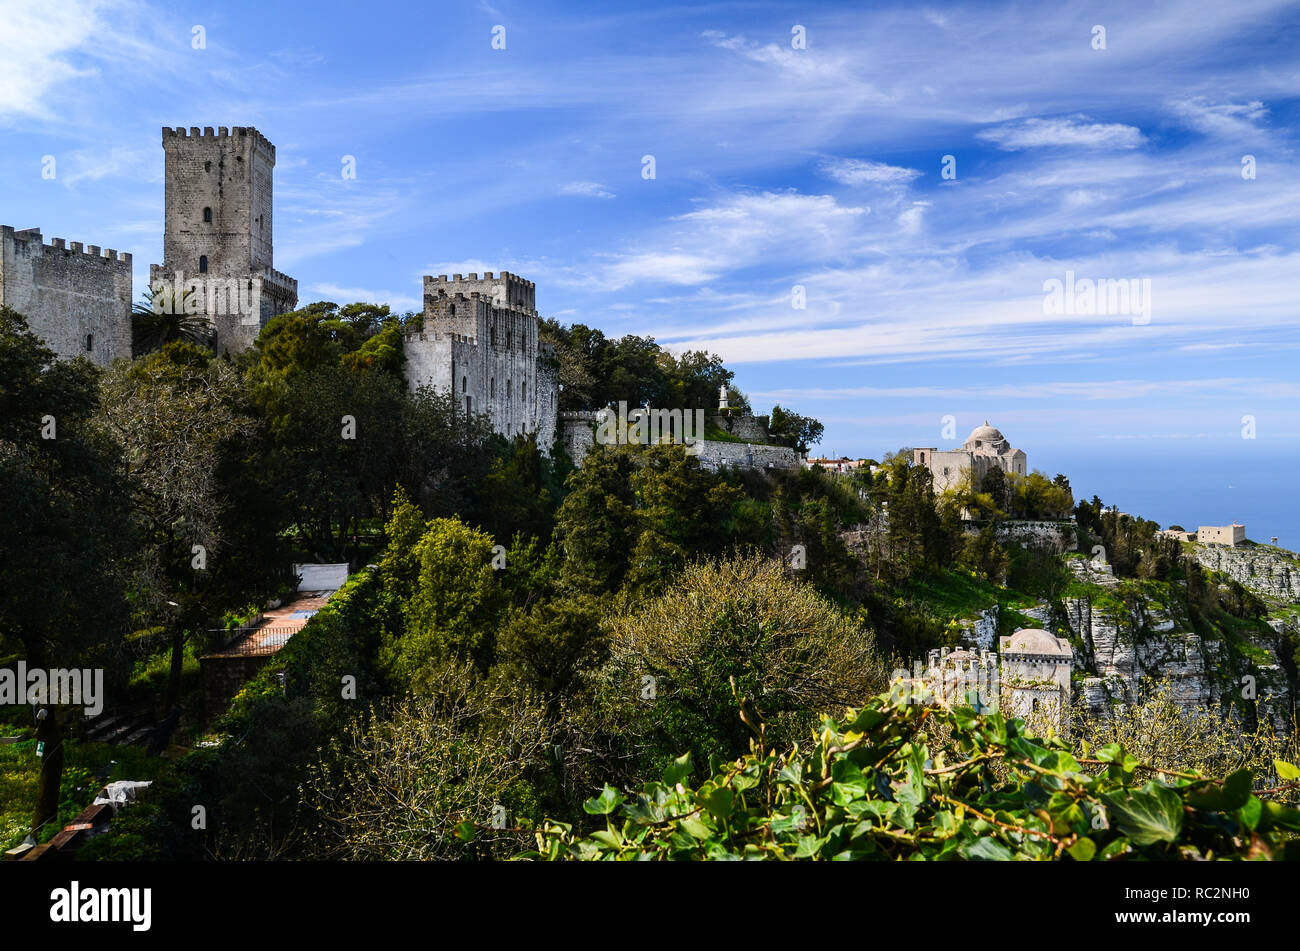 Panoramic view of the Medieval town of Erice with its castle situated on top of a mountain near Trapani, Sicily, Italy. Stock Photo